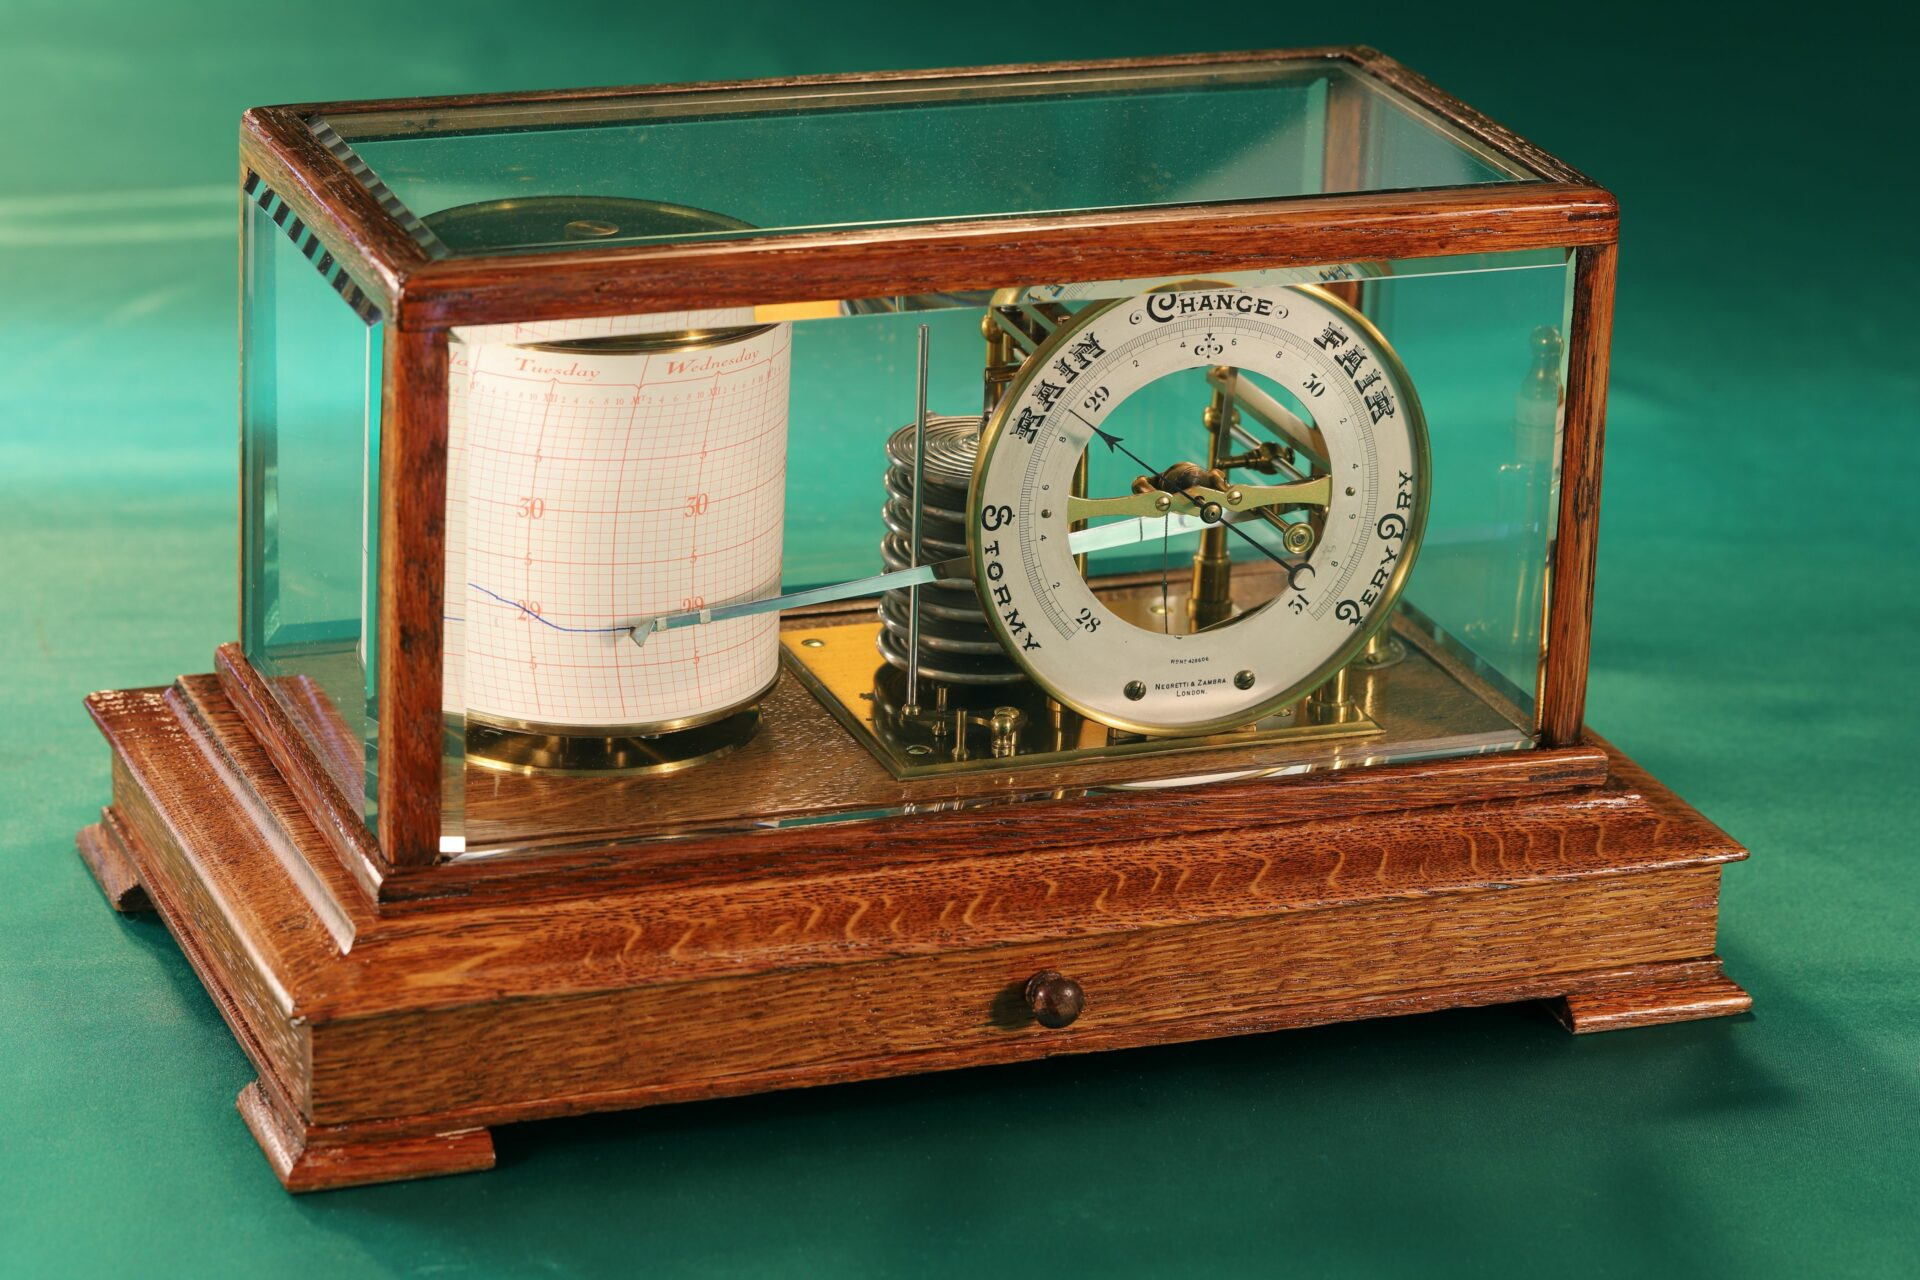 Image of Negretti & Zambra Barograph with Dial No 455 c1918 taken from front left